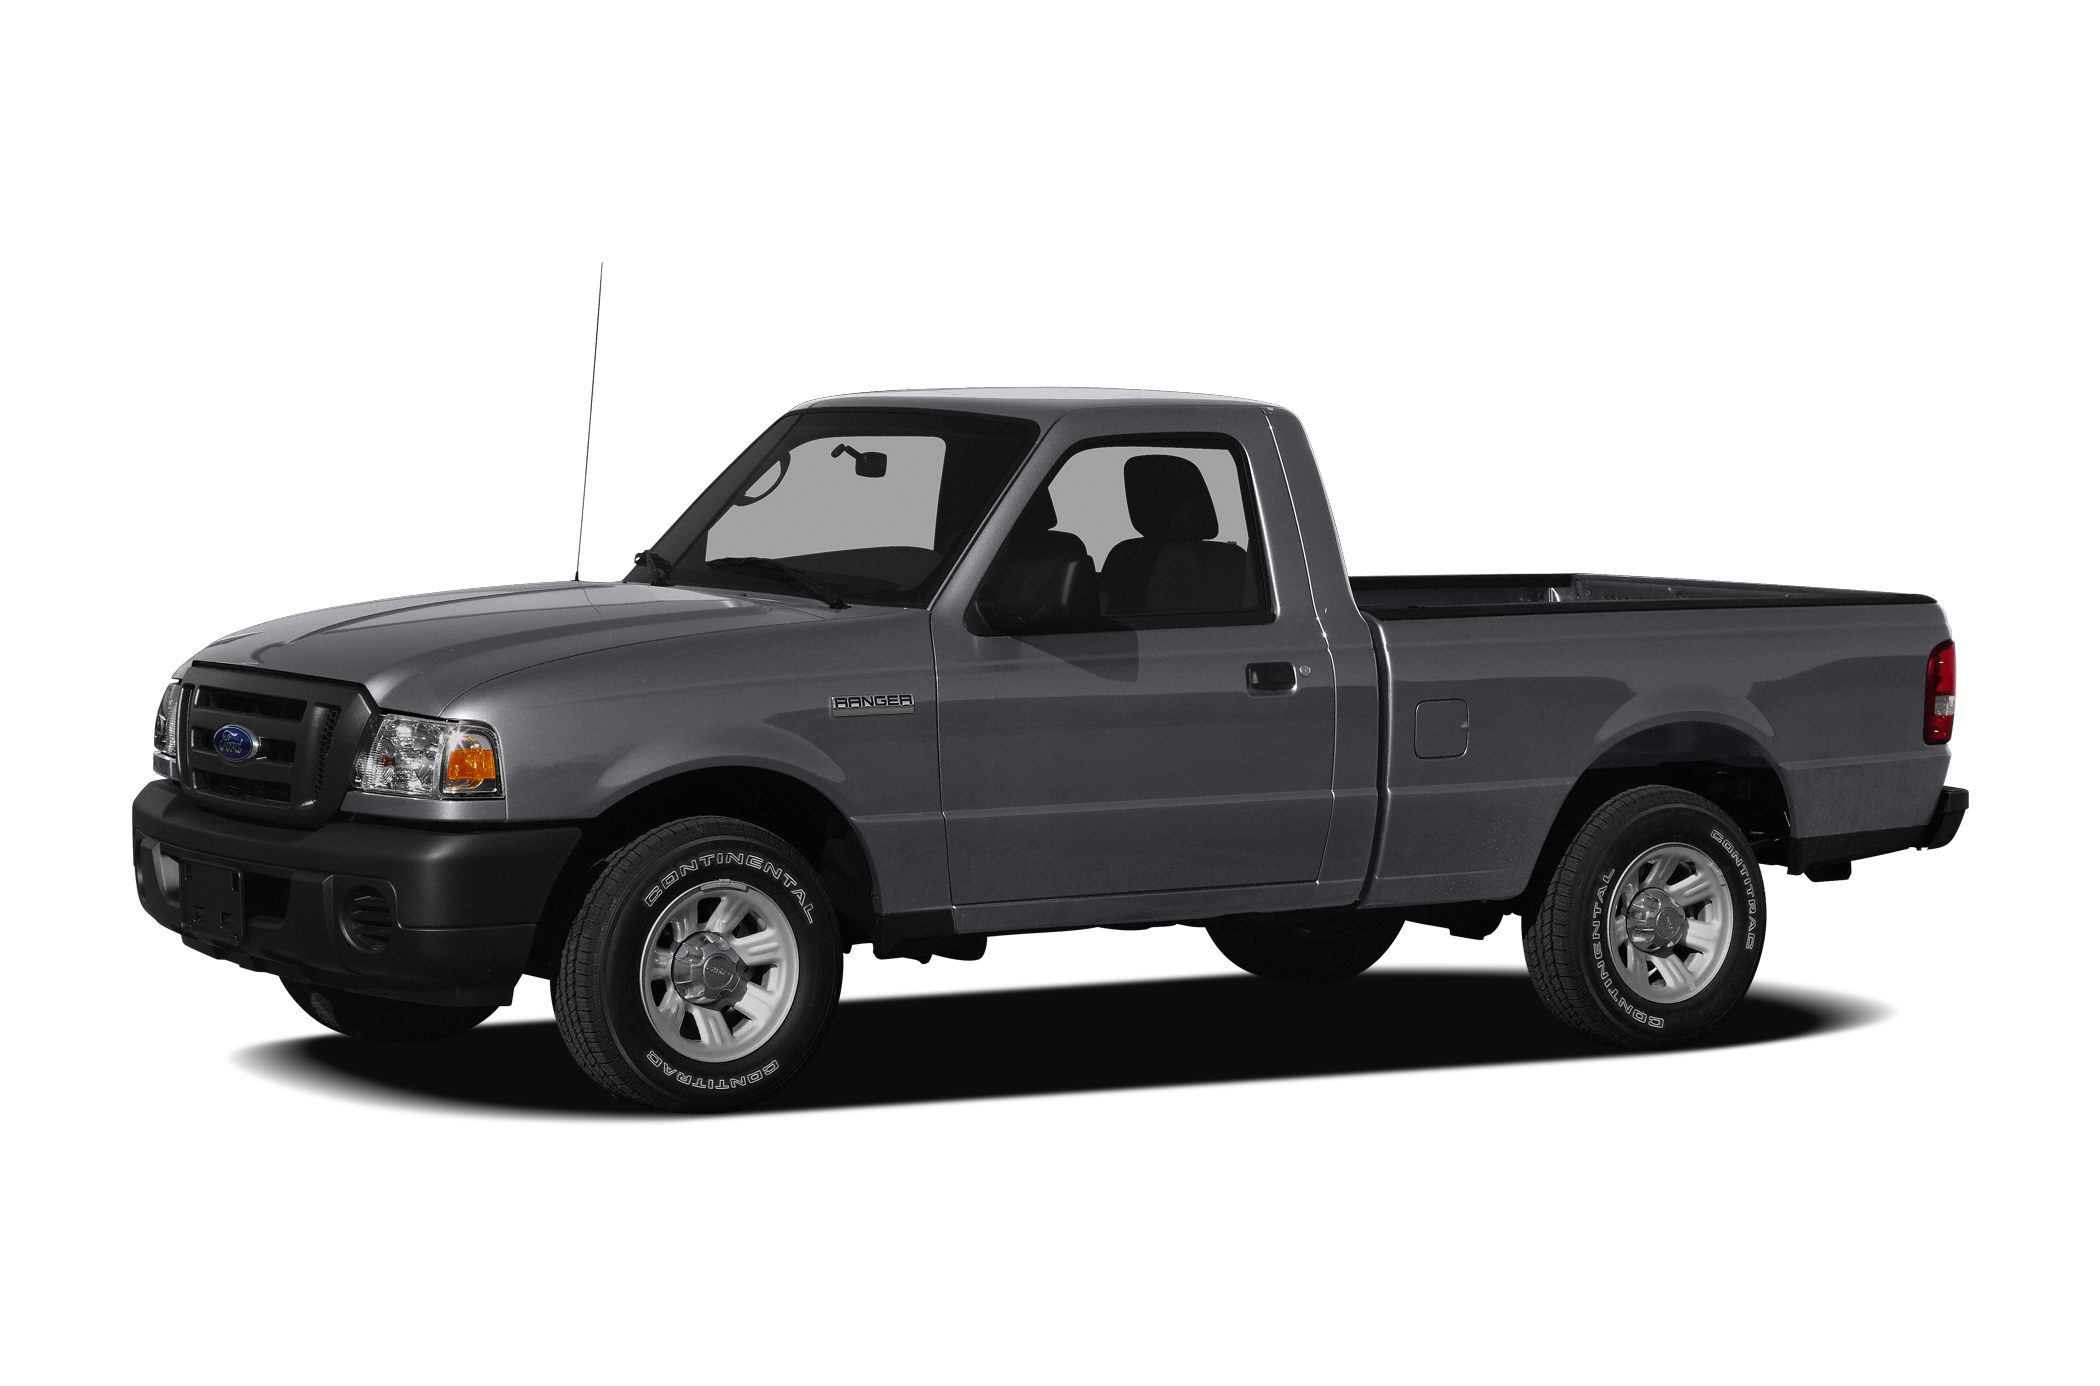 2011 Ford Ranger XL Come see this 2011 Ford Ranger XL It has a transmission and a Gas I4 23L140